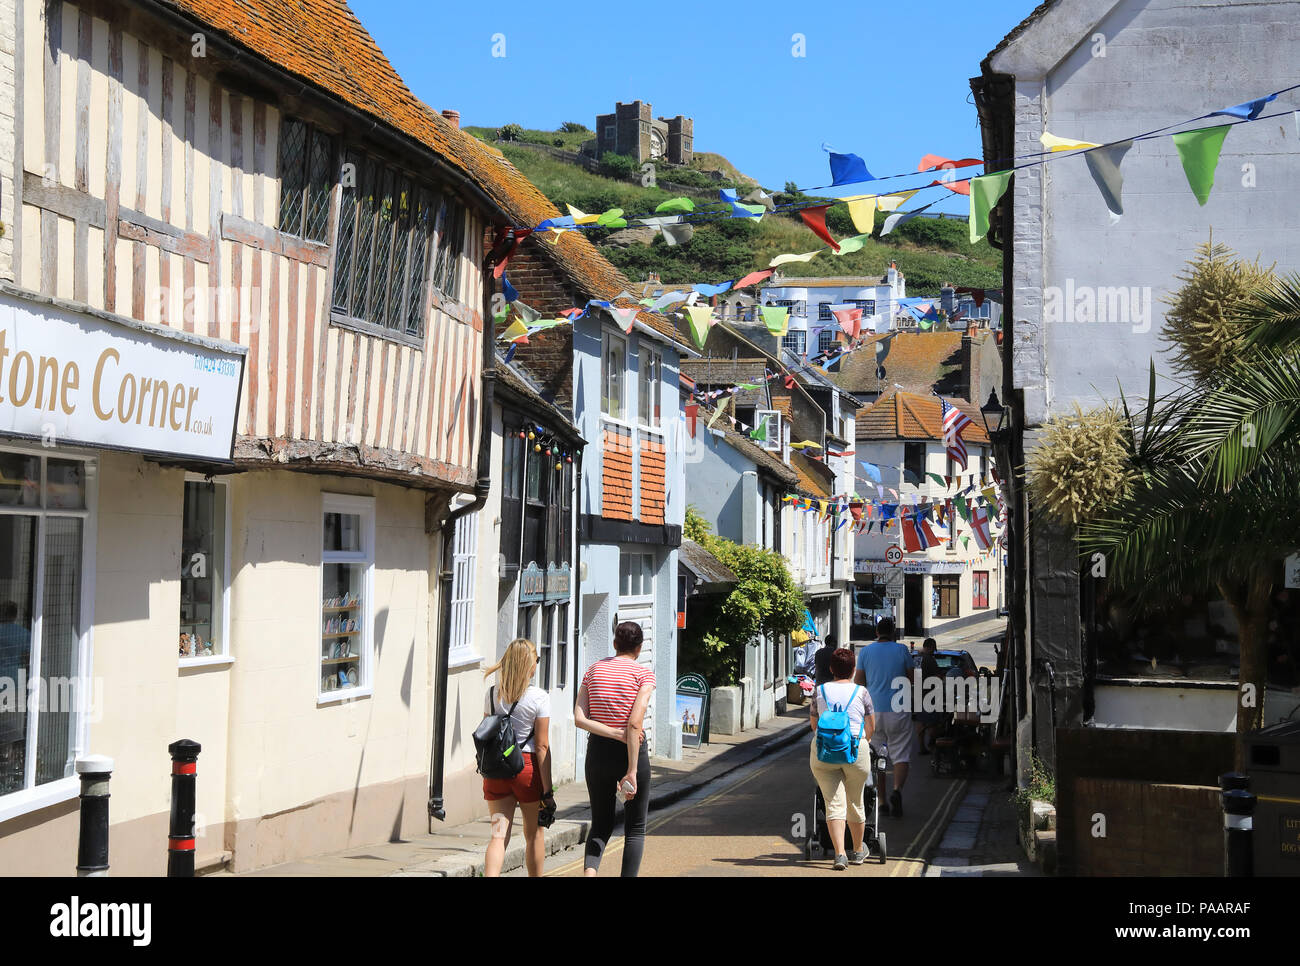 Courthouse Street in Hastings Old Town with the East Hill Lift beyond, in East Sussex, UK - Stock Image